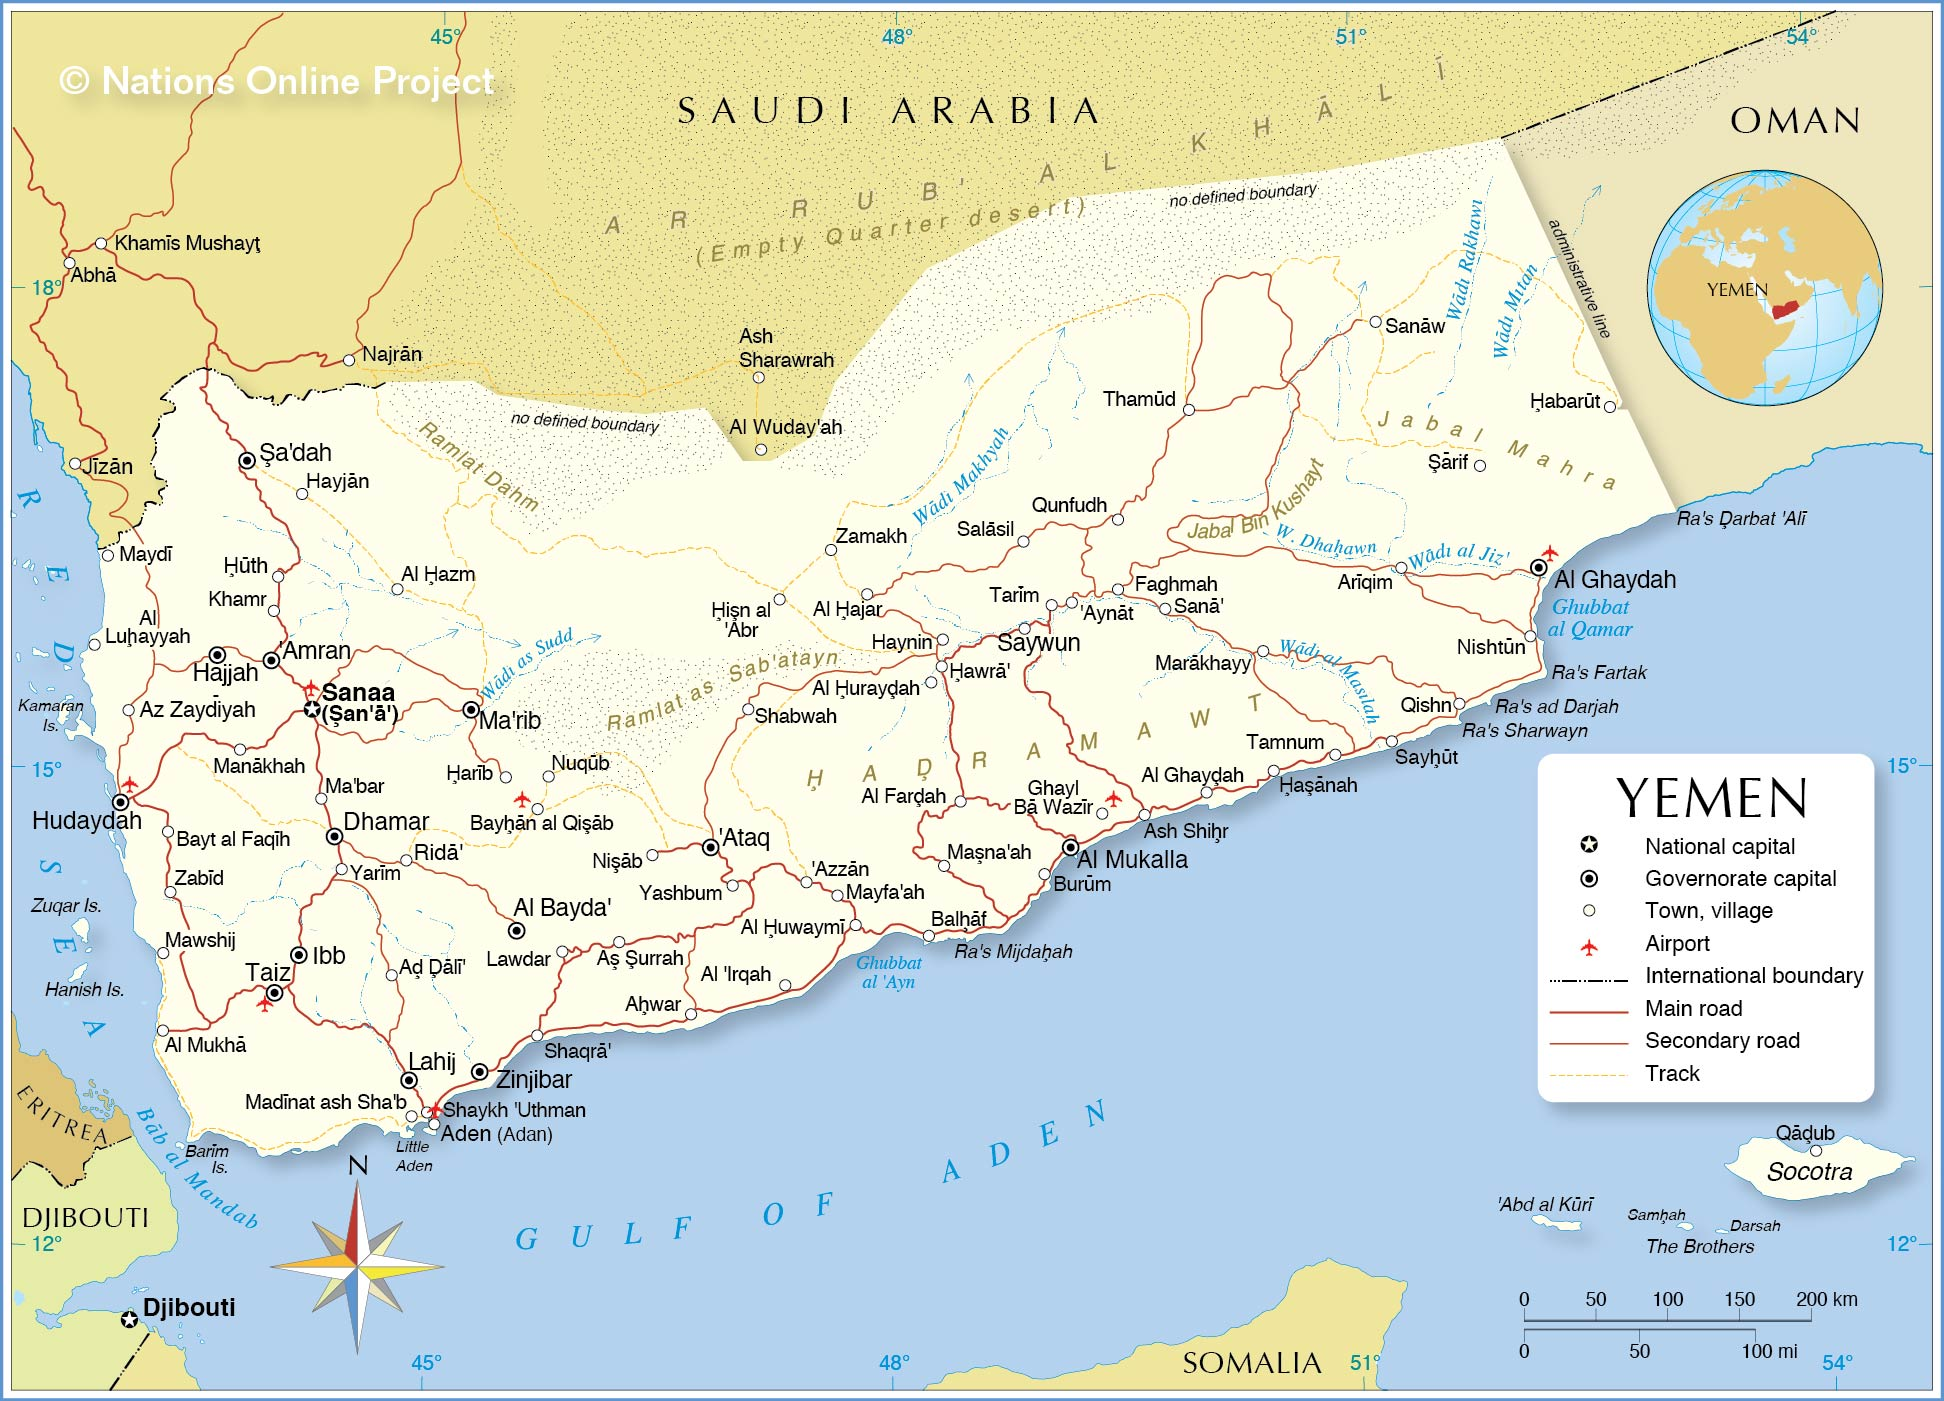 Political Map Of Yemen Nations Online Project - Yemen maps with countries